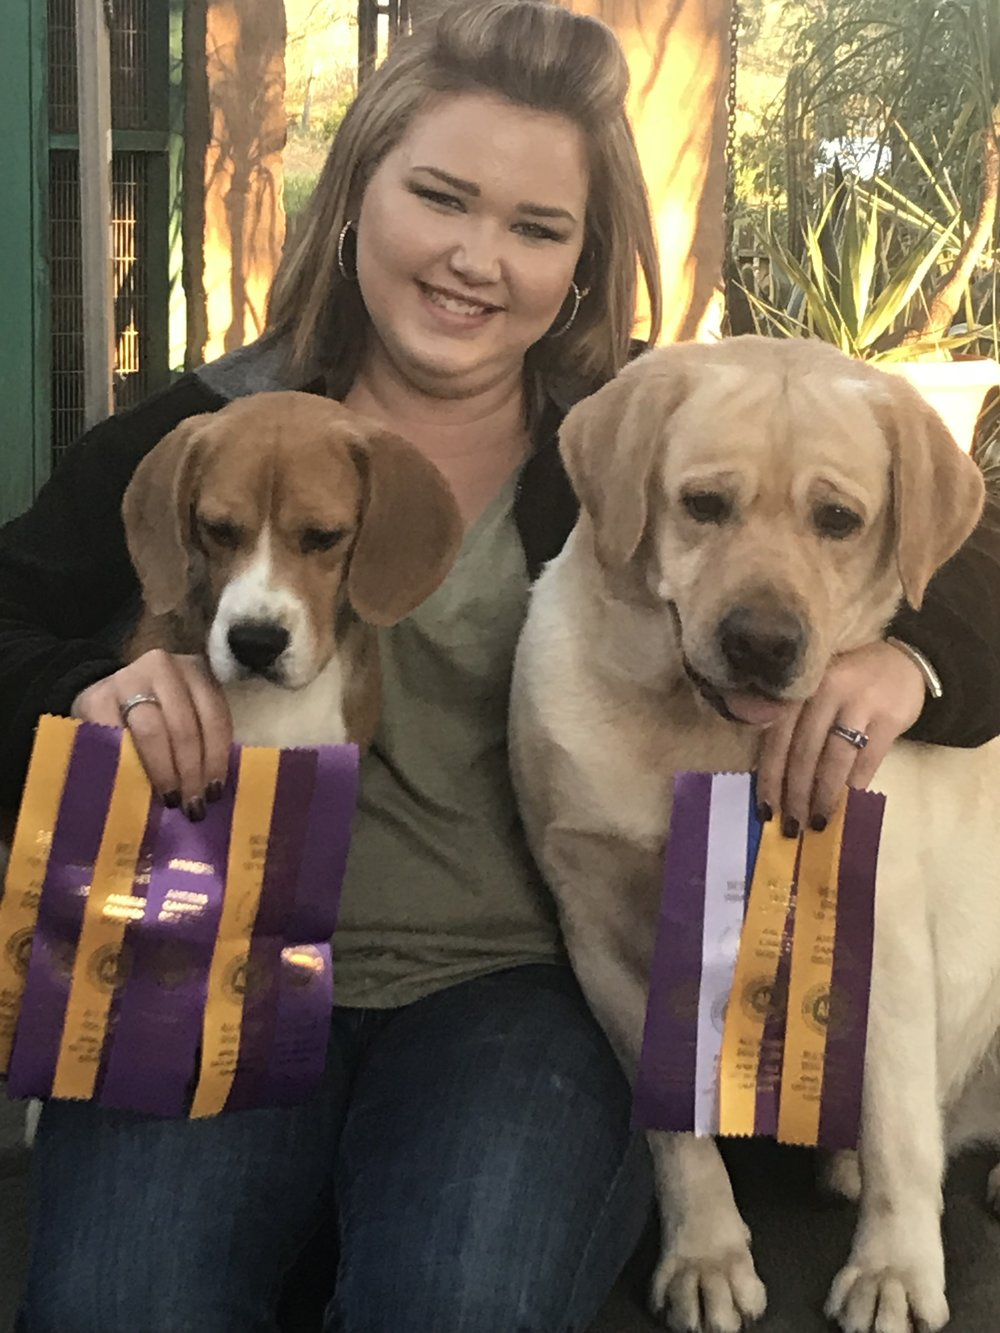 Lime (left), Warrick (right), and I after finishing their championships and winning the breed multiple times in the same weekend.